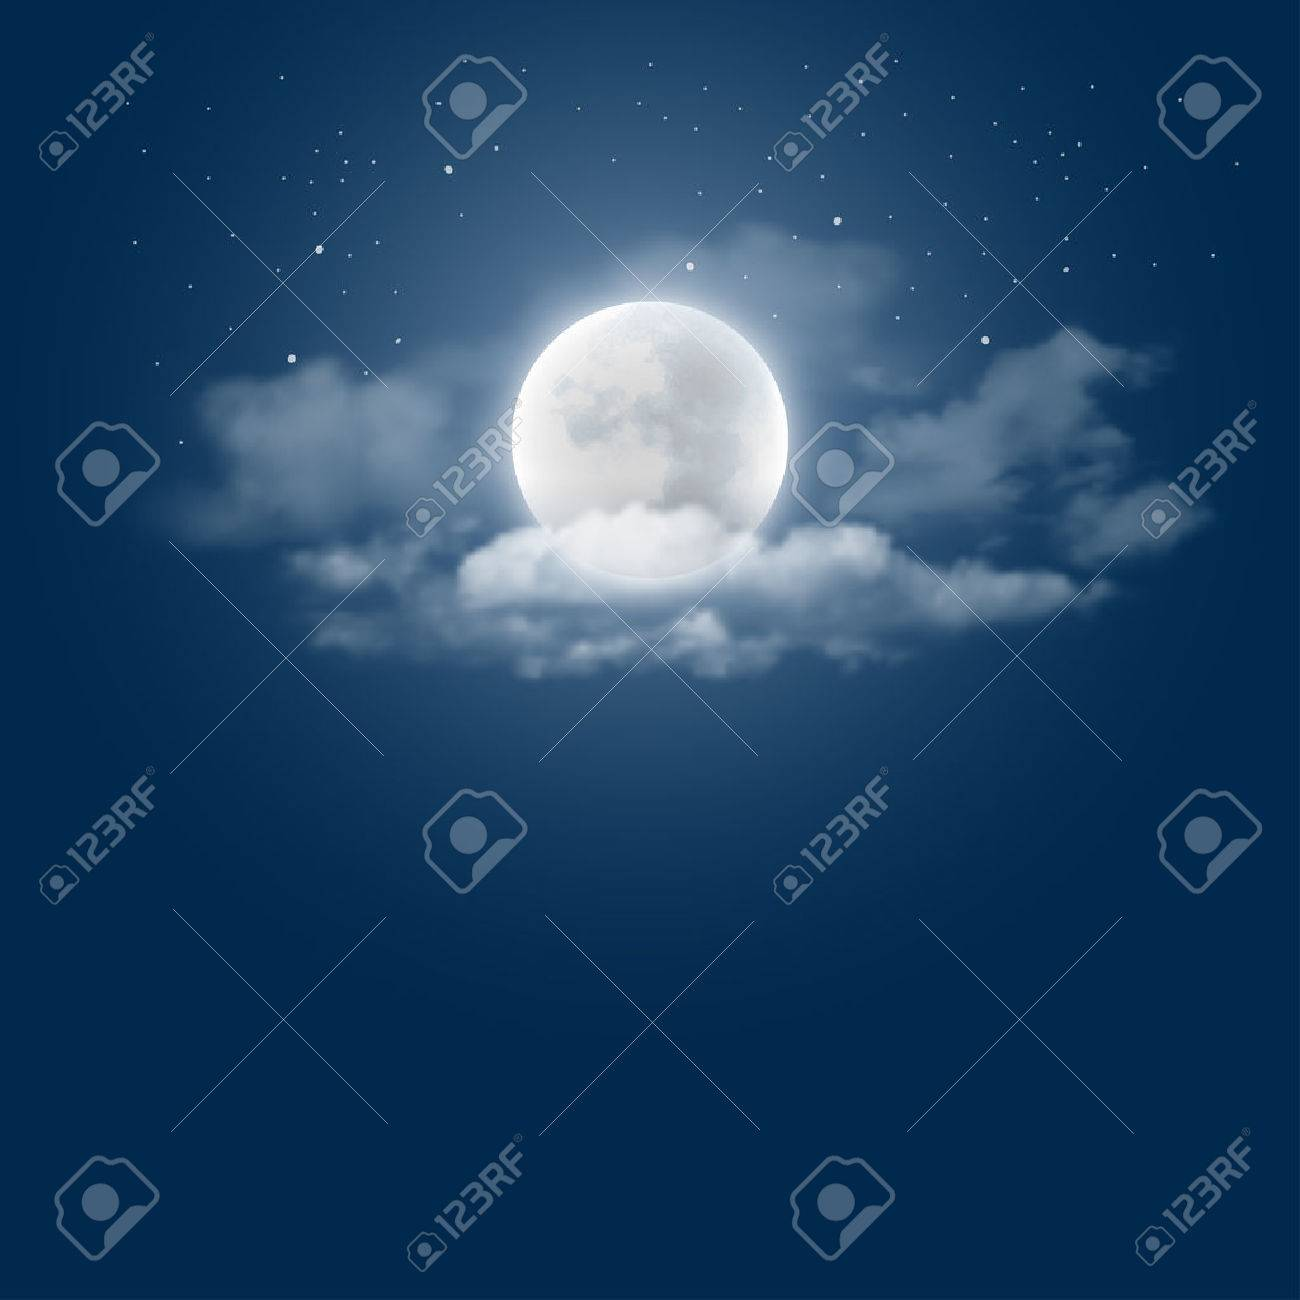 Mystical Night sky background with full moon, clouds and stars. Moonlight night. Vector illustration. - 55571656